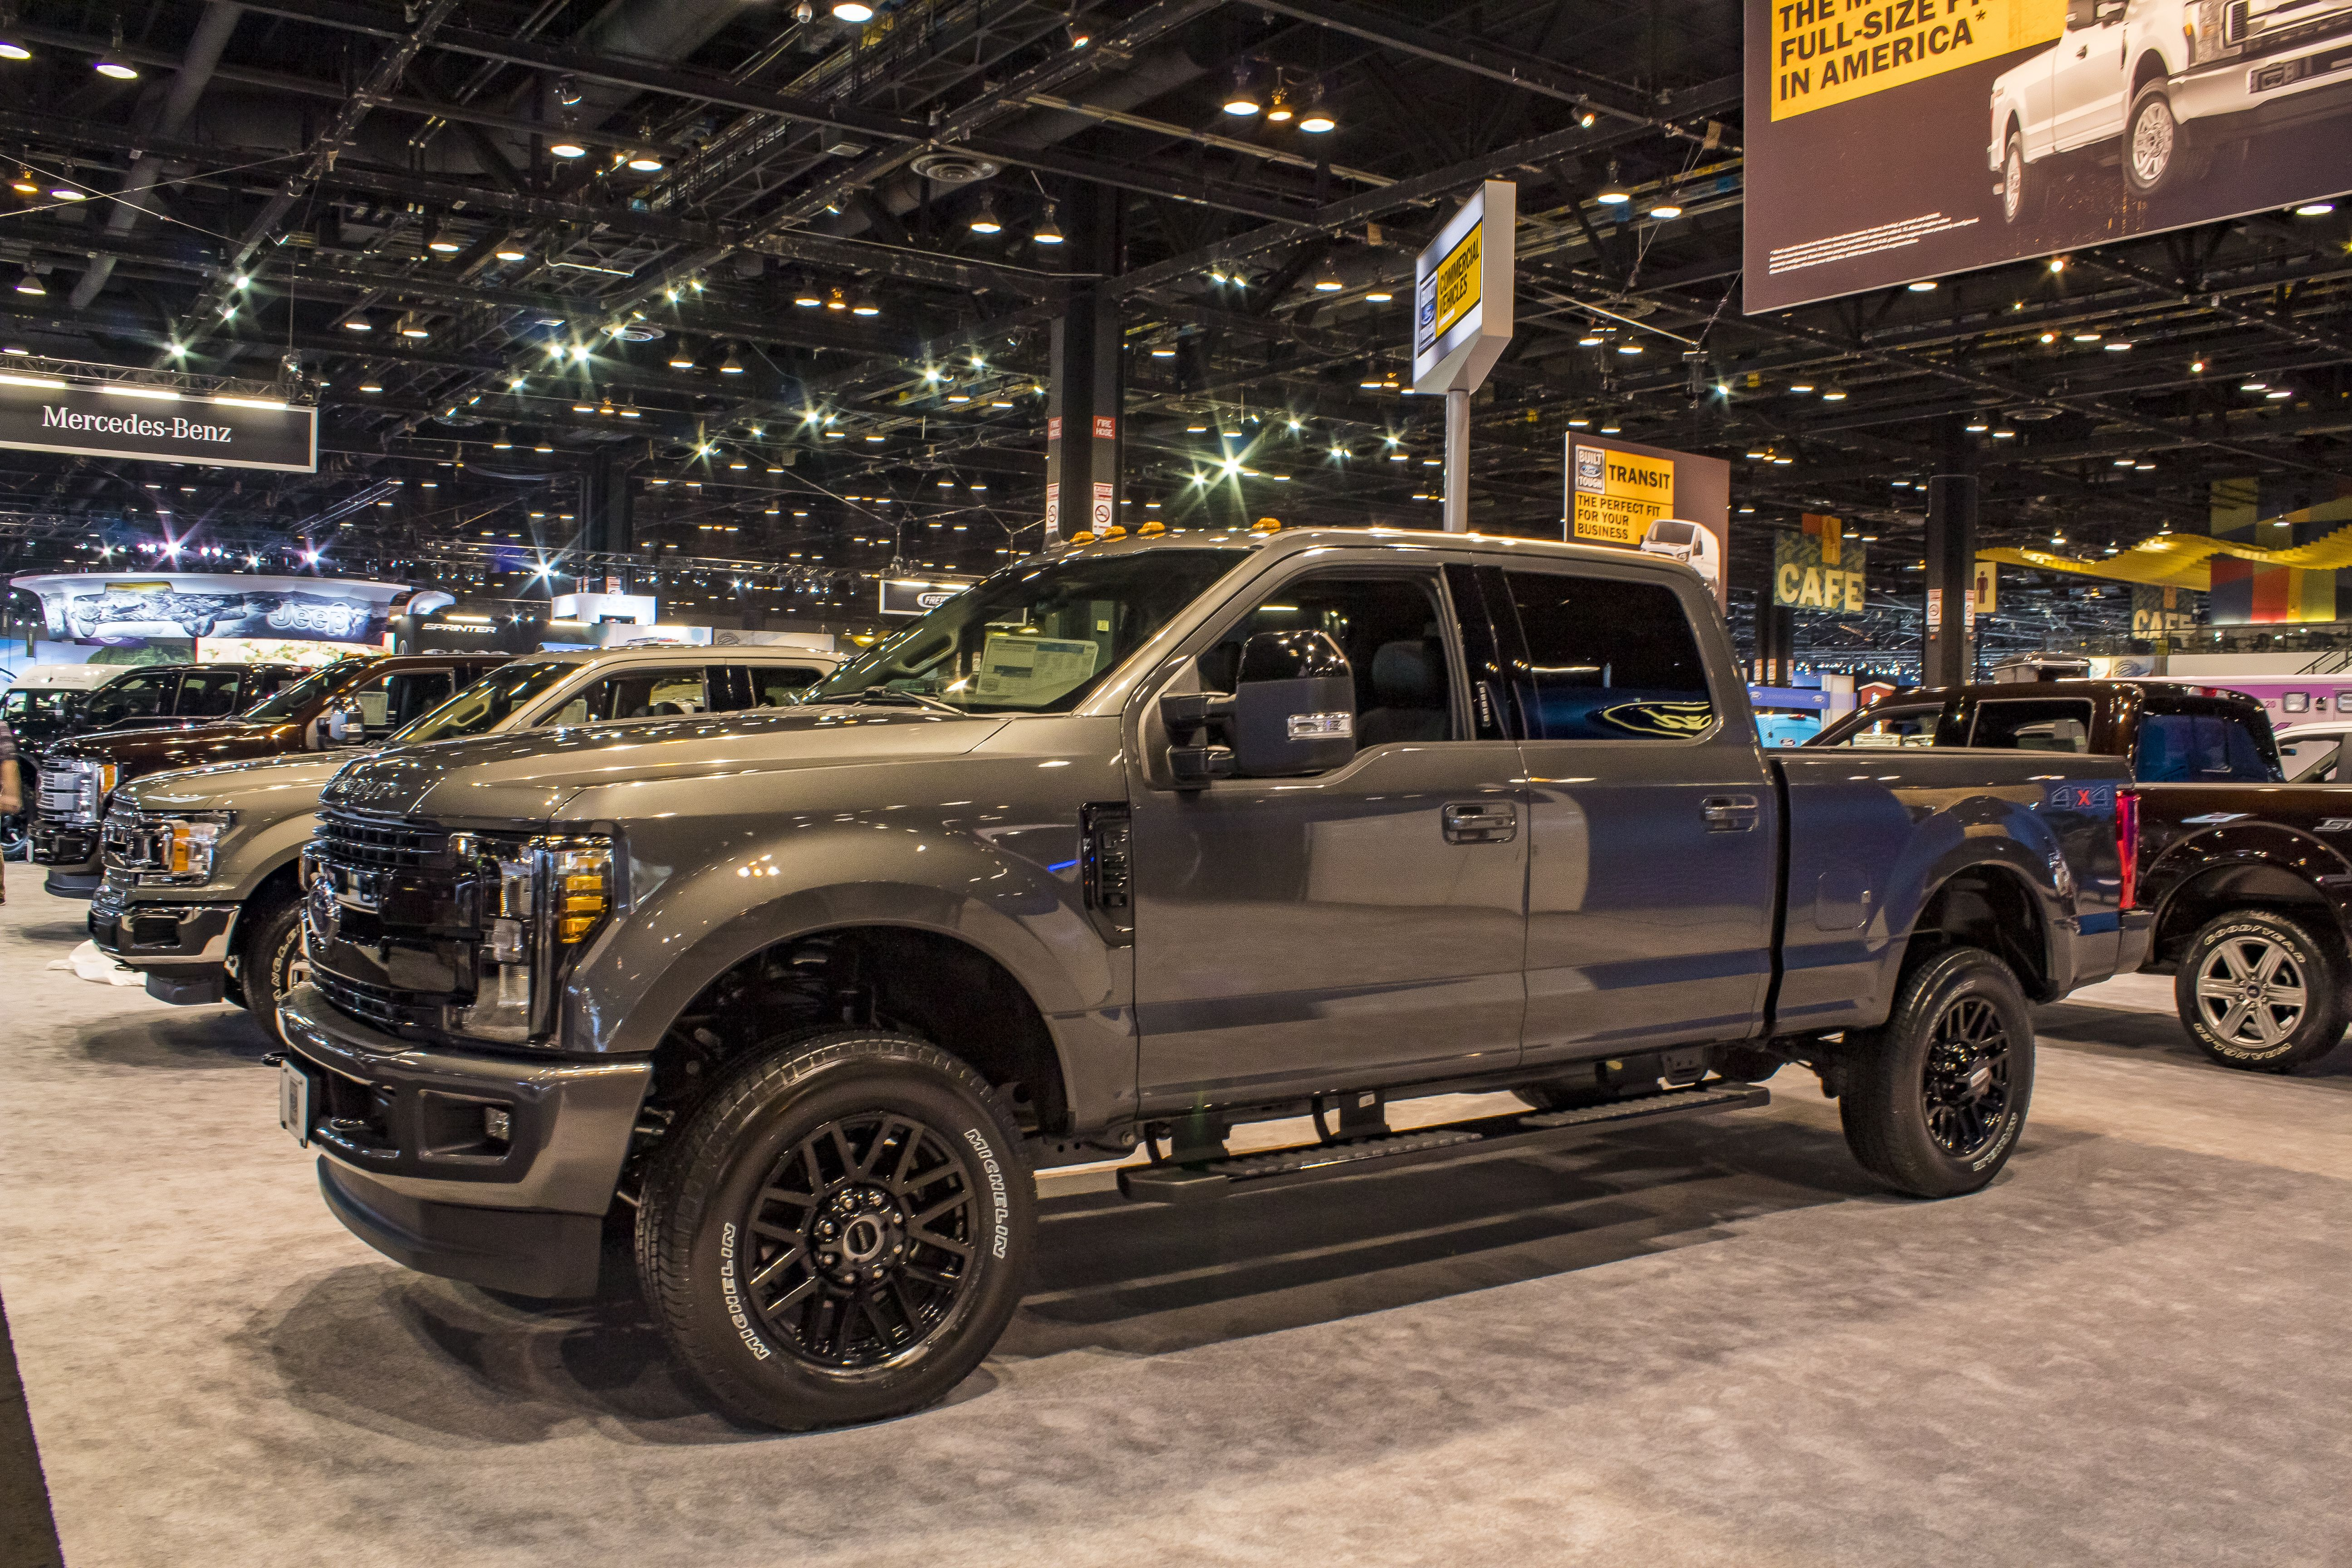 Ford S Godzilla Engine Could Receive A Mighty Boost Thanks To A New Whipple Supercharger Top Speed In 2020 Supercharger Ford Super Duty Latest Cars